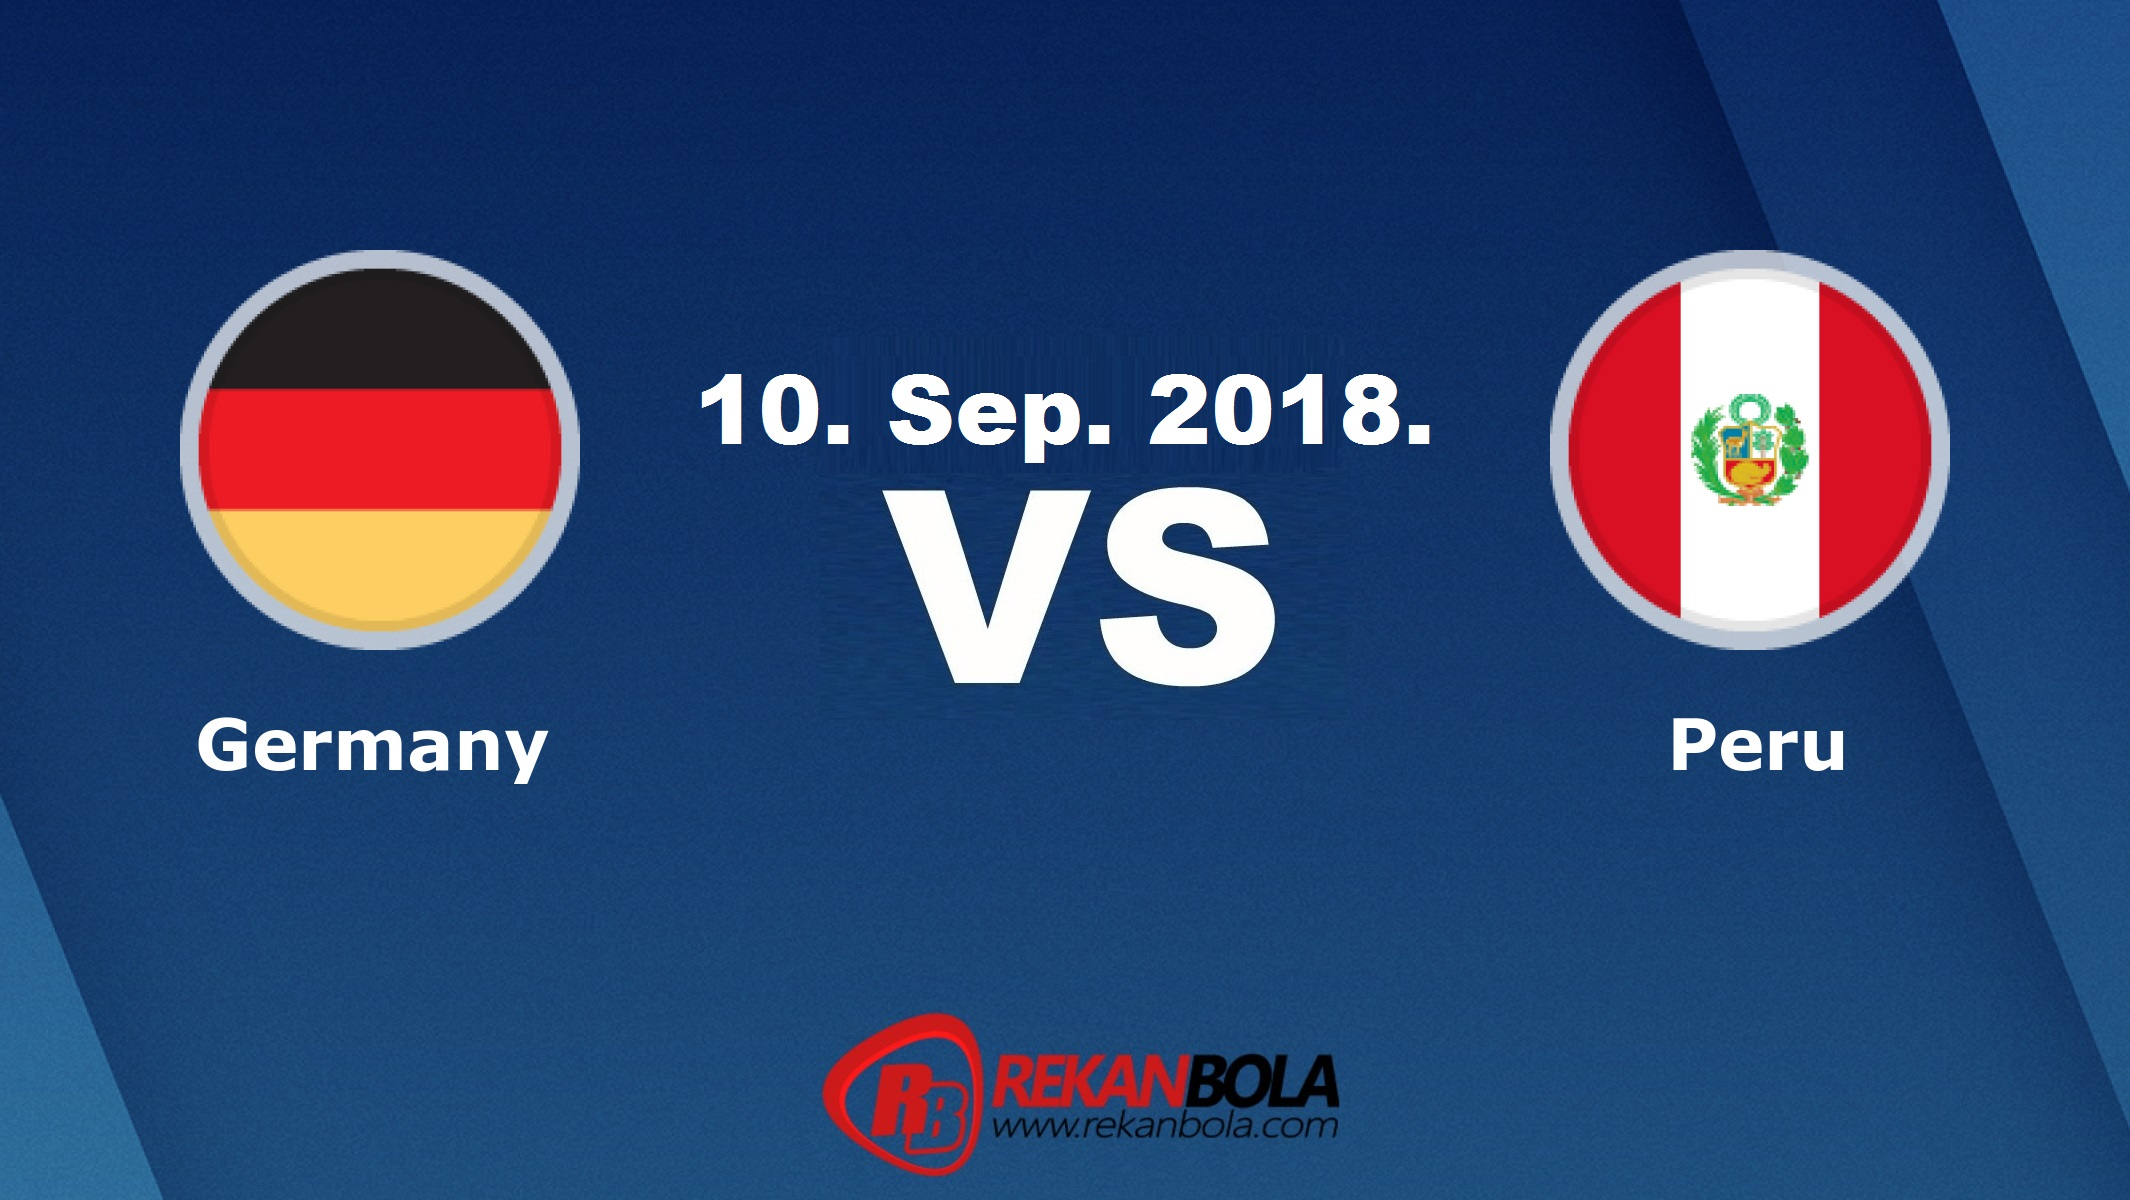 Nonton Siaran Live Streaming Jerman Vs Peru 10 September 2018